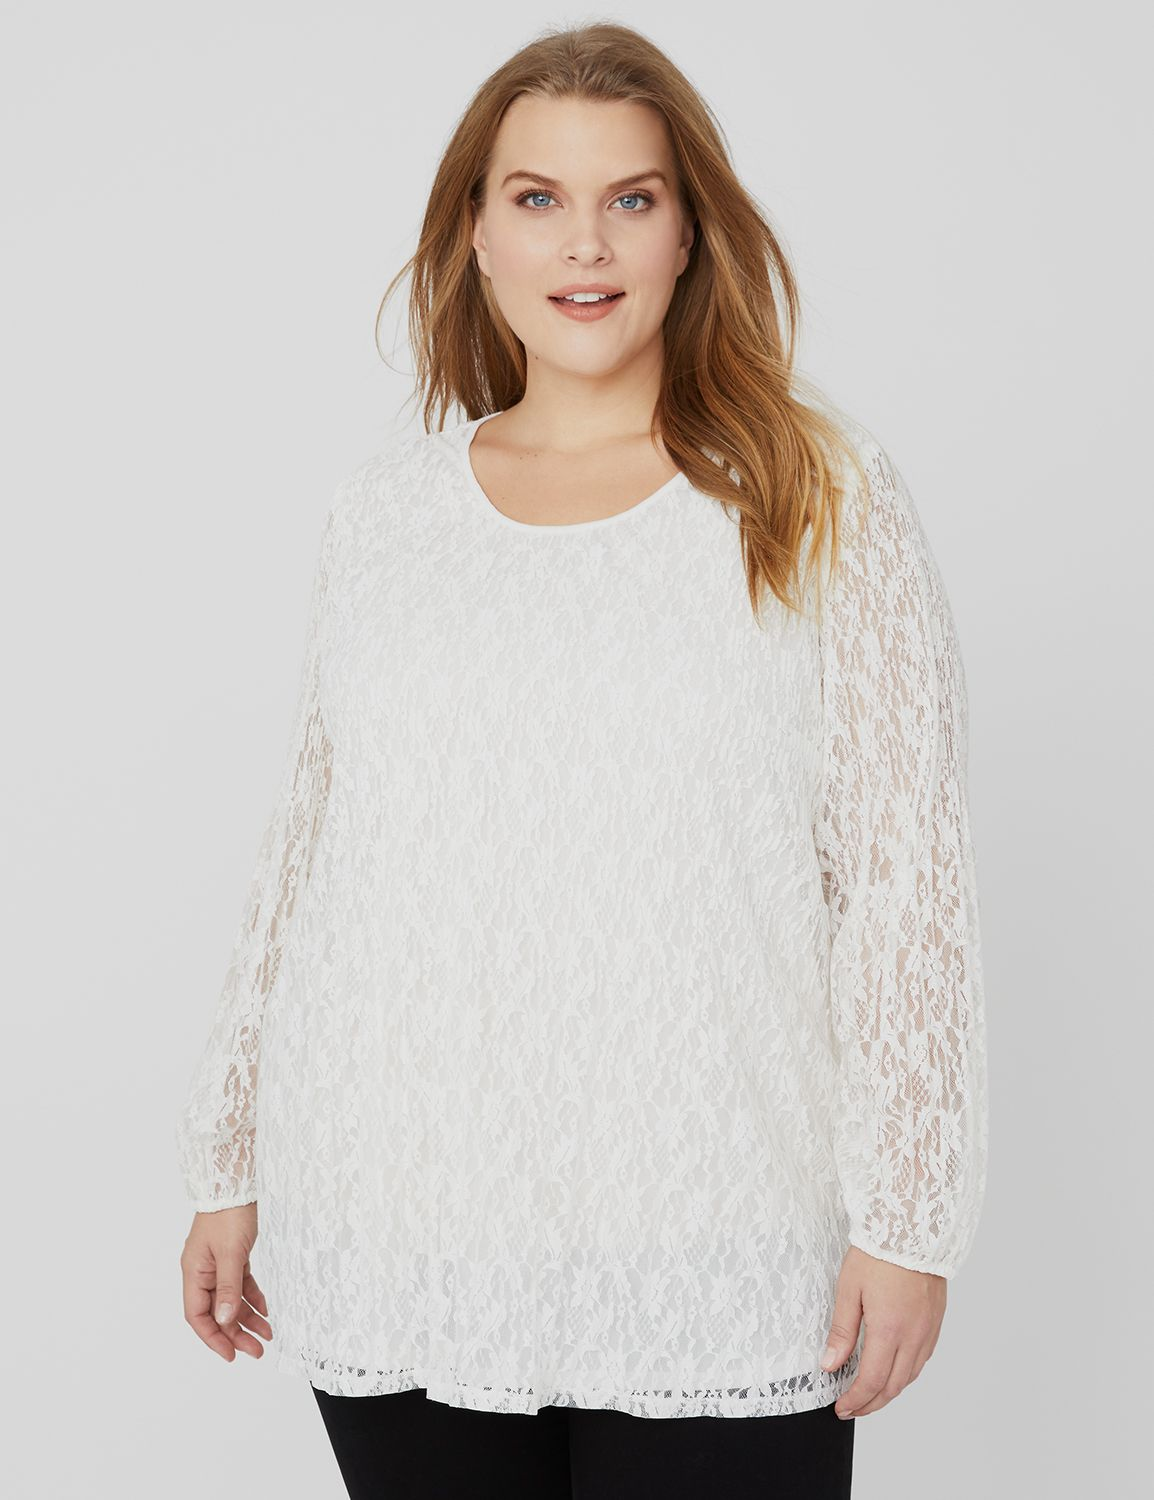 Pleated Lace Top Lace Cold Shoulder Pleater MP-300088764